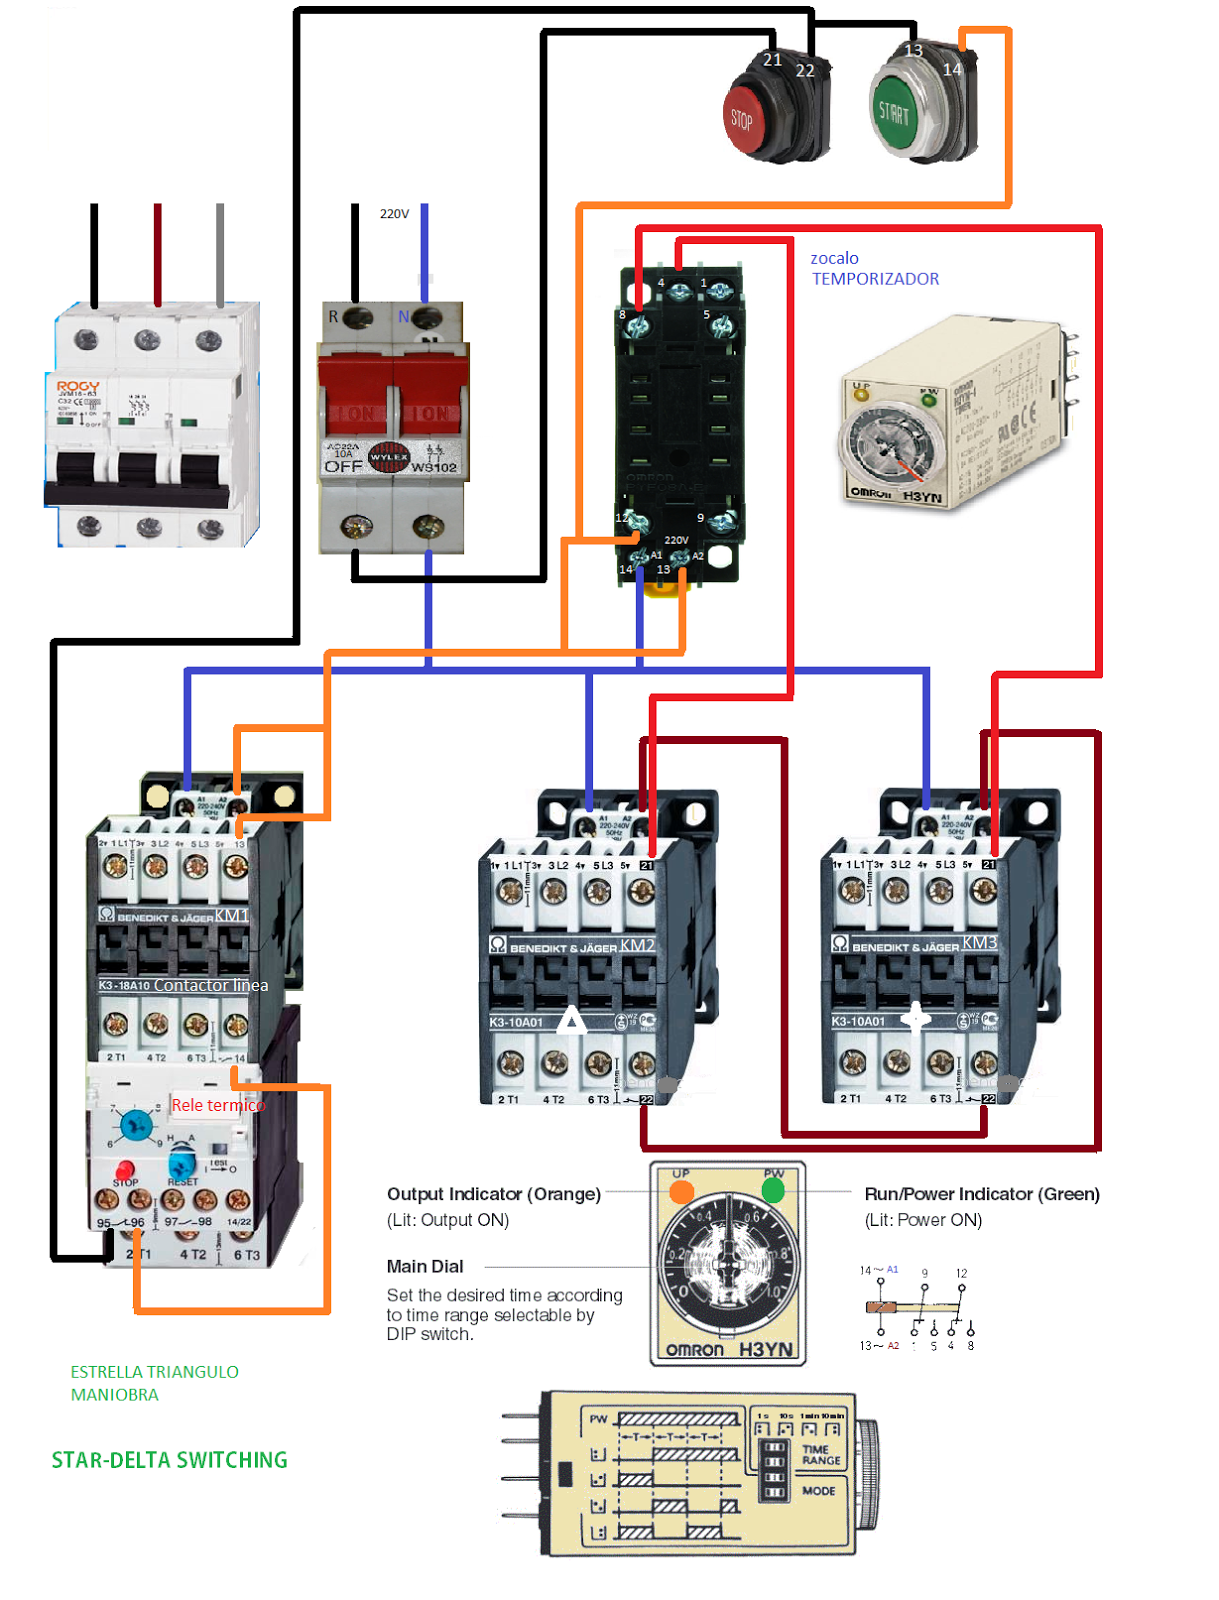 Star Delta Switching Electrical Engineering Blog Electrical Circuit Diagram Electrical Projects Electrical Engineering